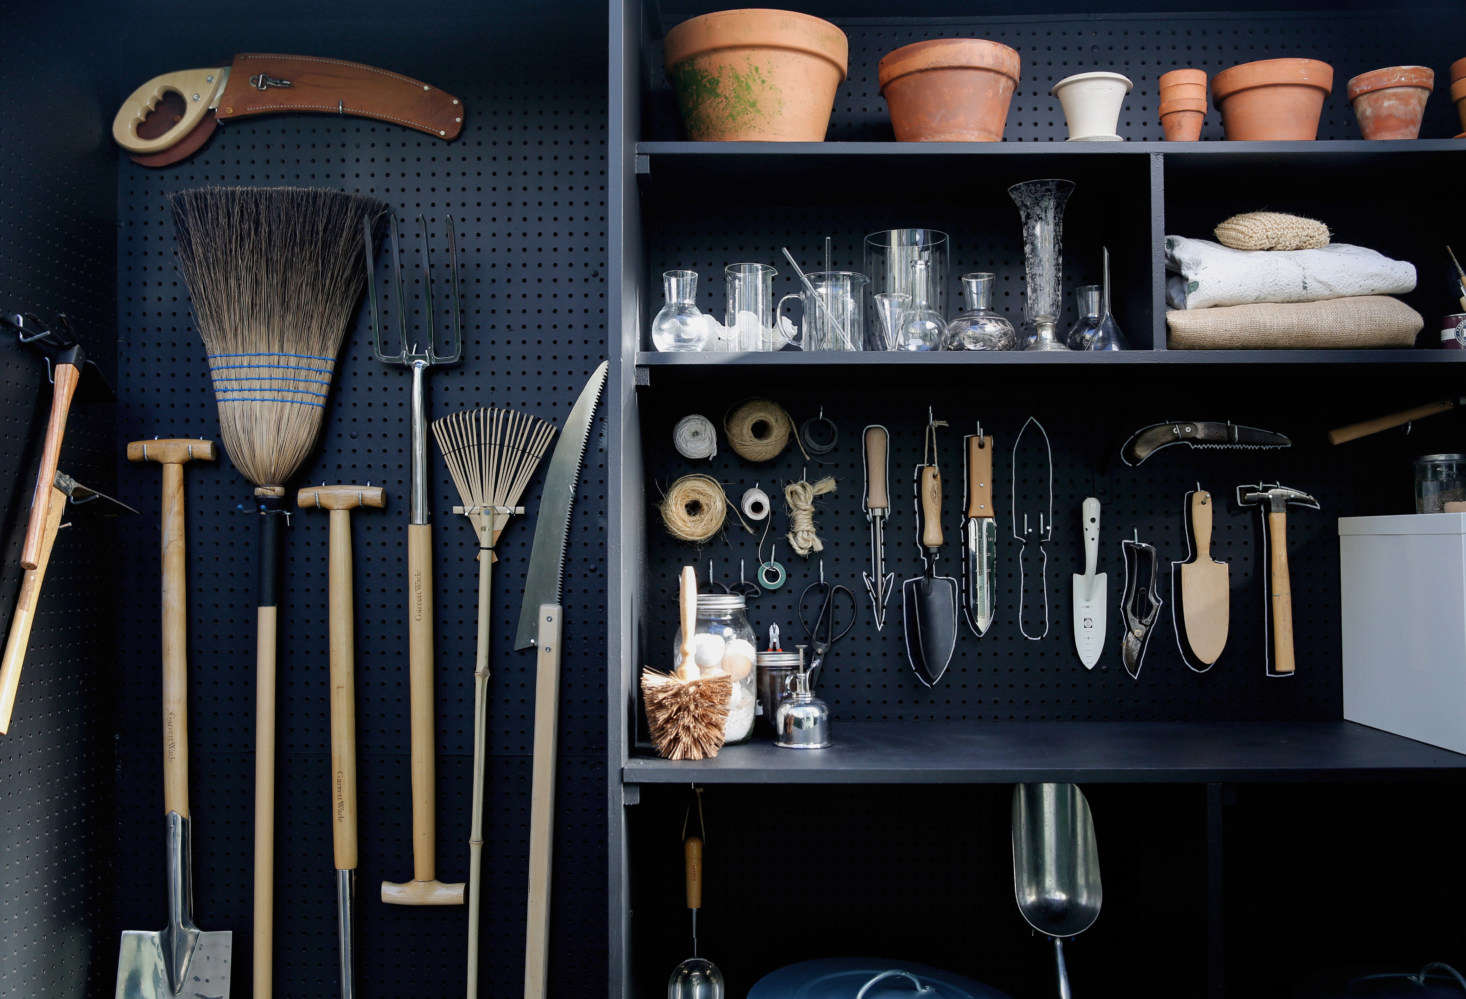 Long-handled tools like rakes and brooms hang on one side of the shed.